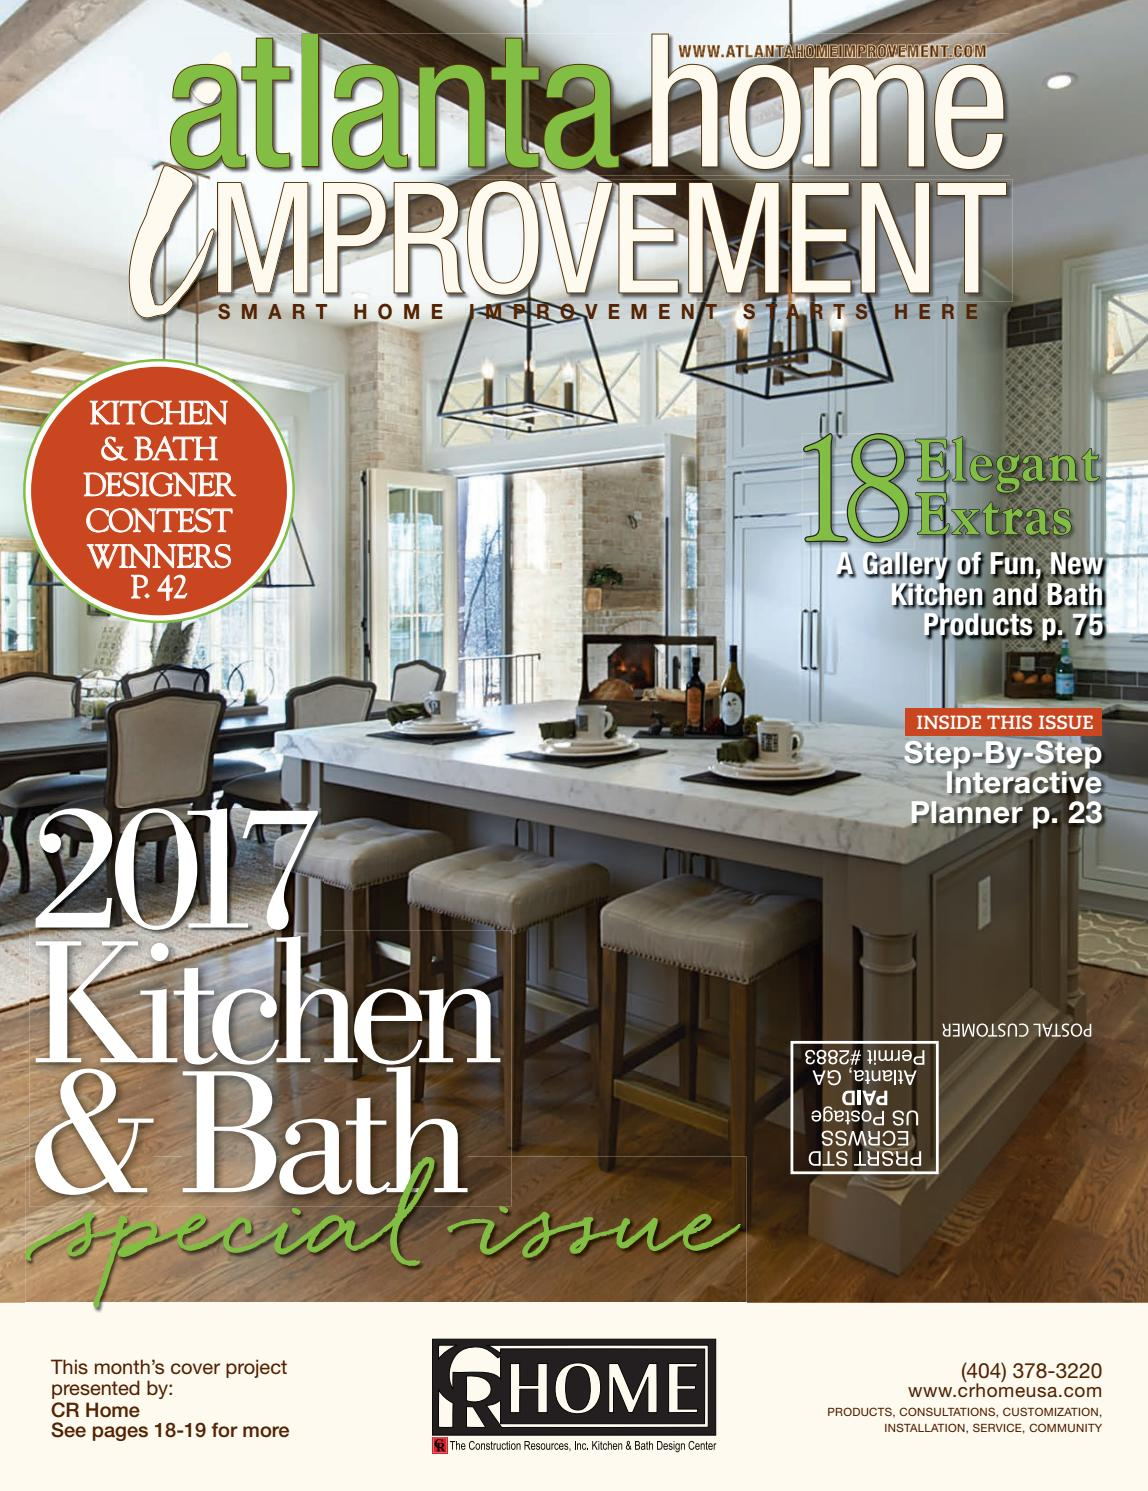 Wallpaper Magazine Kitchen Design Atlanta Home Improvement 2017 Kitchen And Bath Special Issue